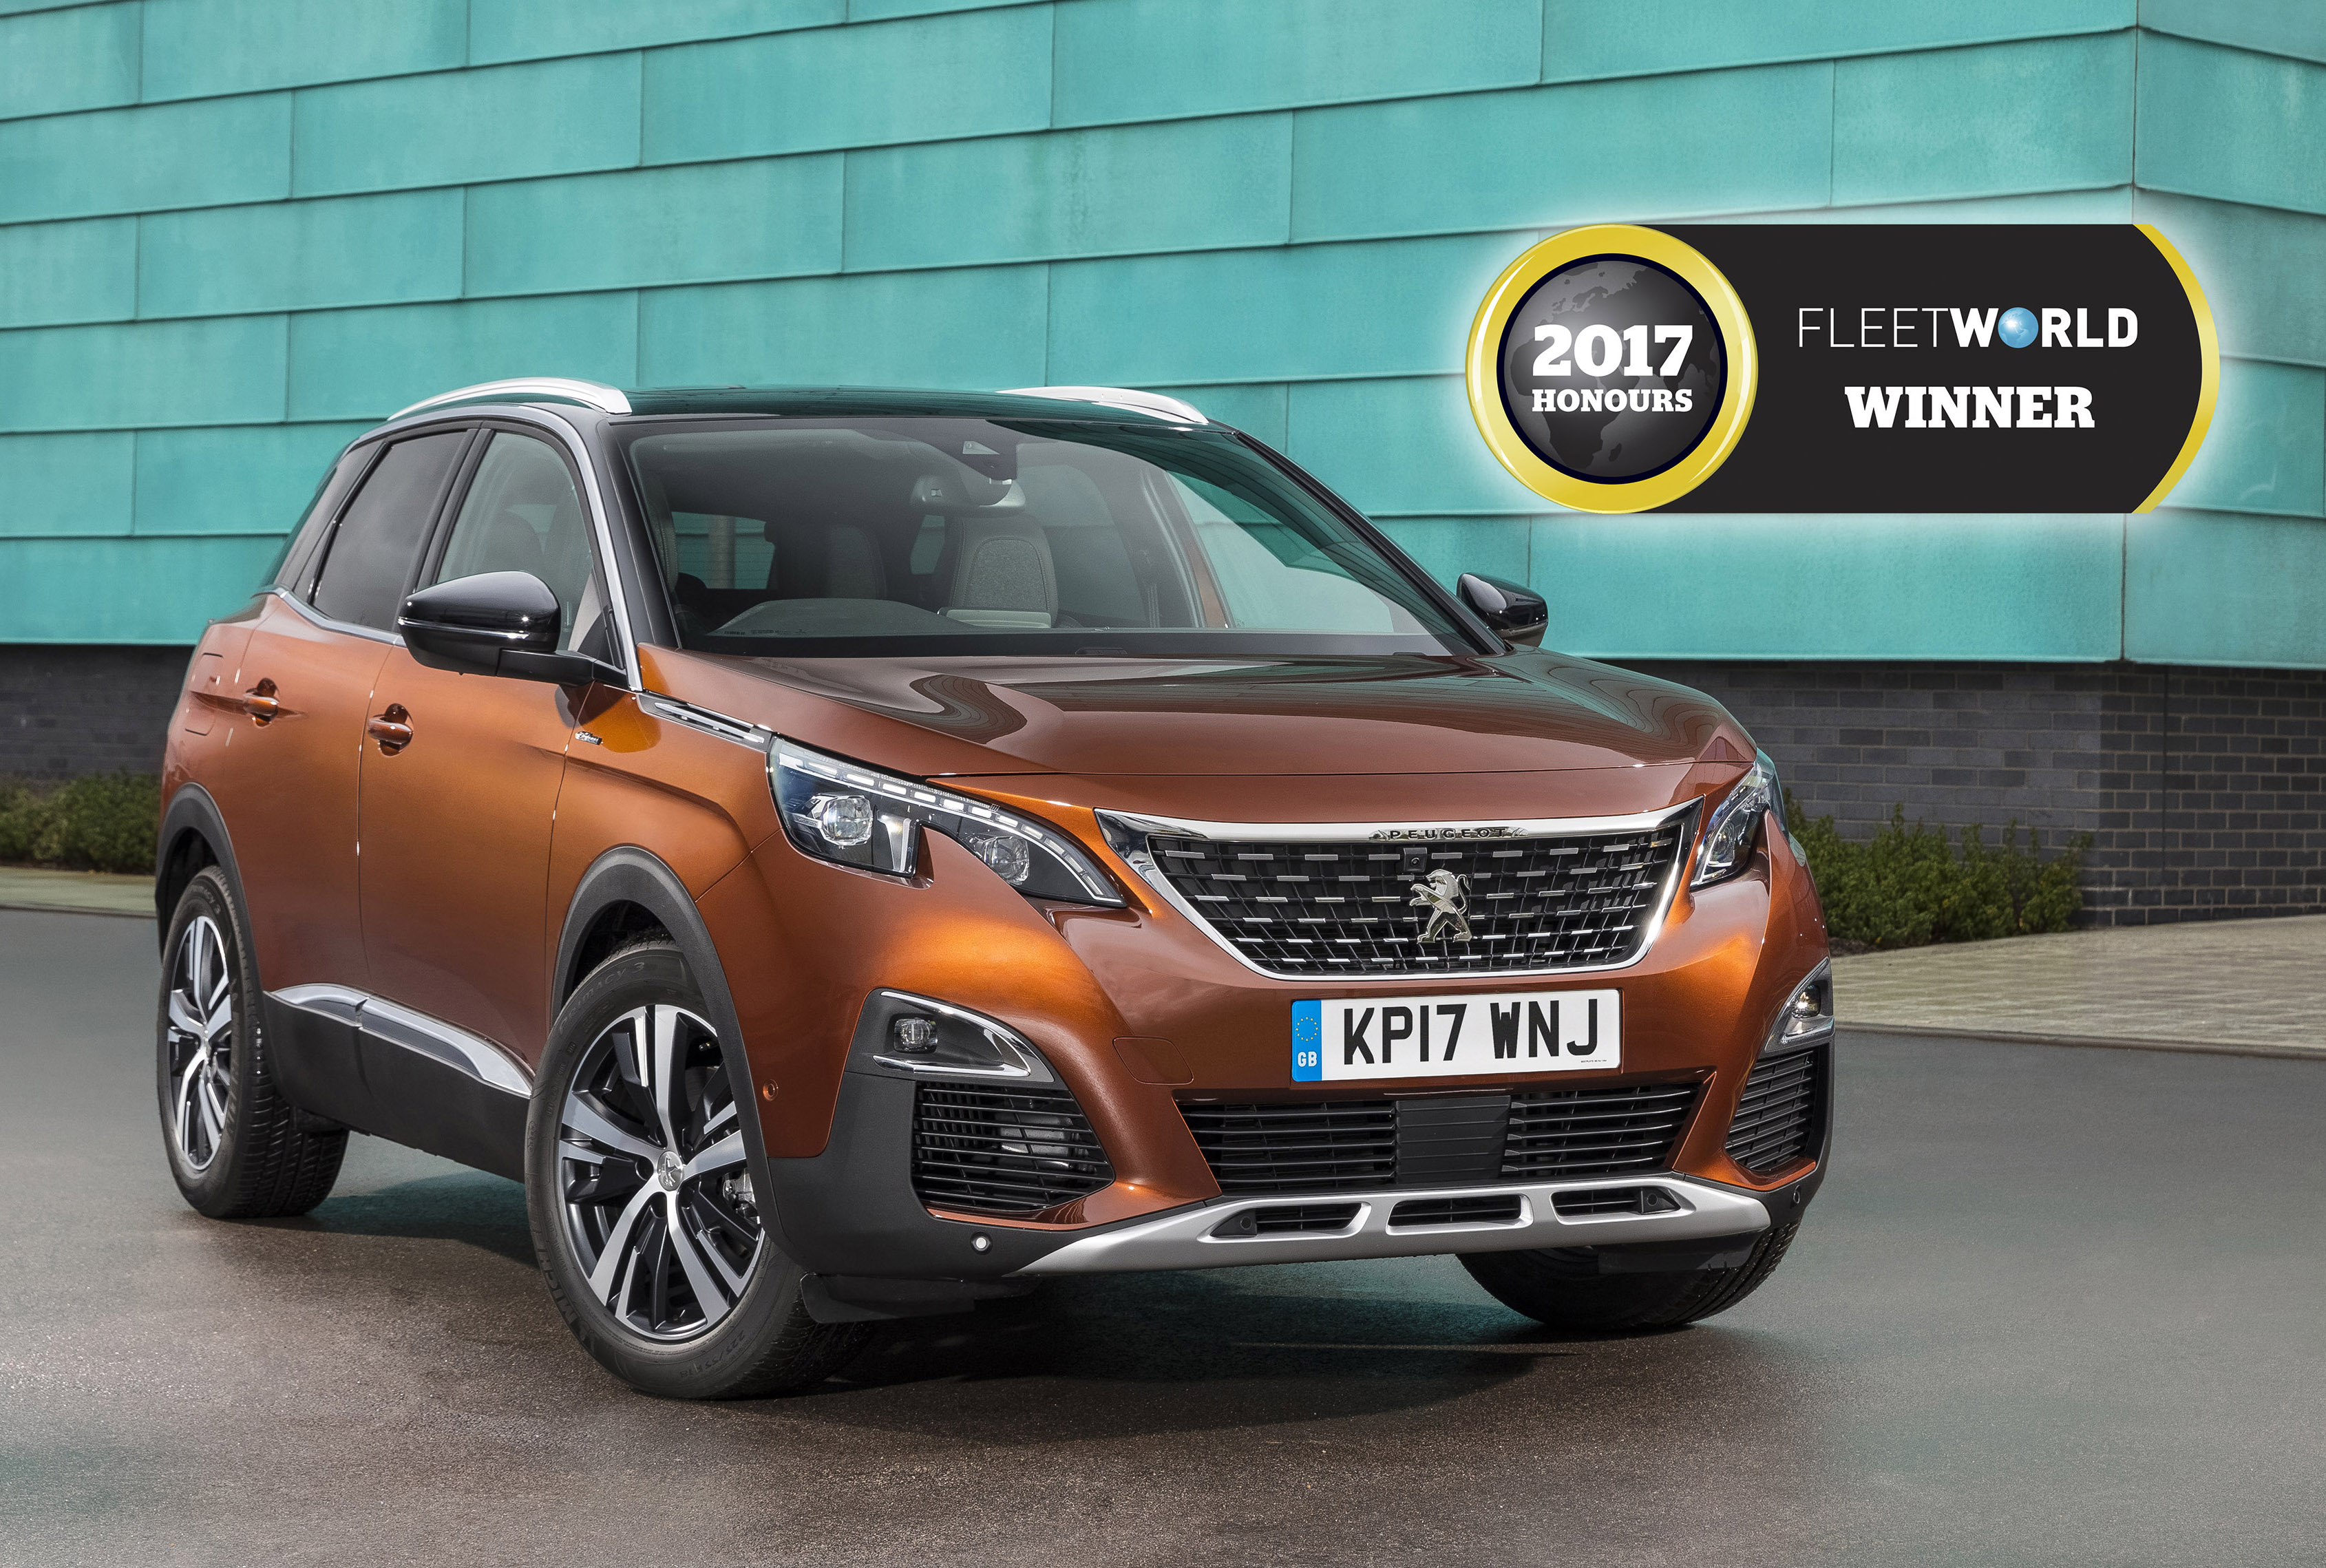 all new peugeot 3008 suv wins crossover of the year award in the 2017 fleet world honours. Black Bedroom Furniture Sets. Home Design Ideas